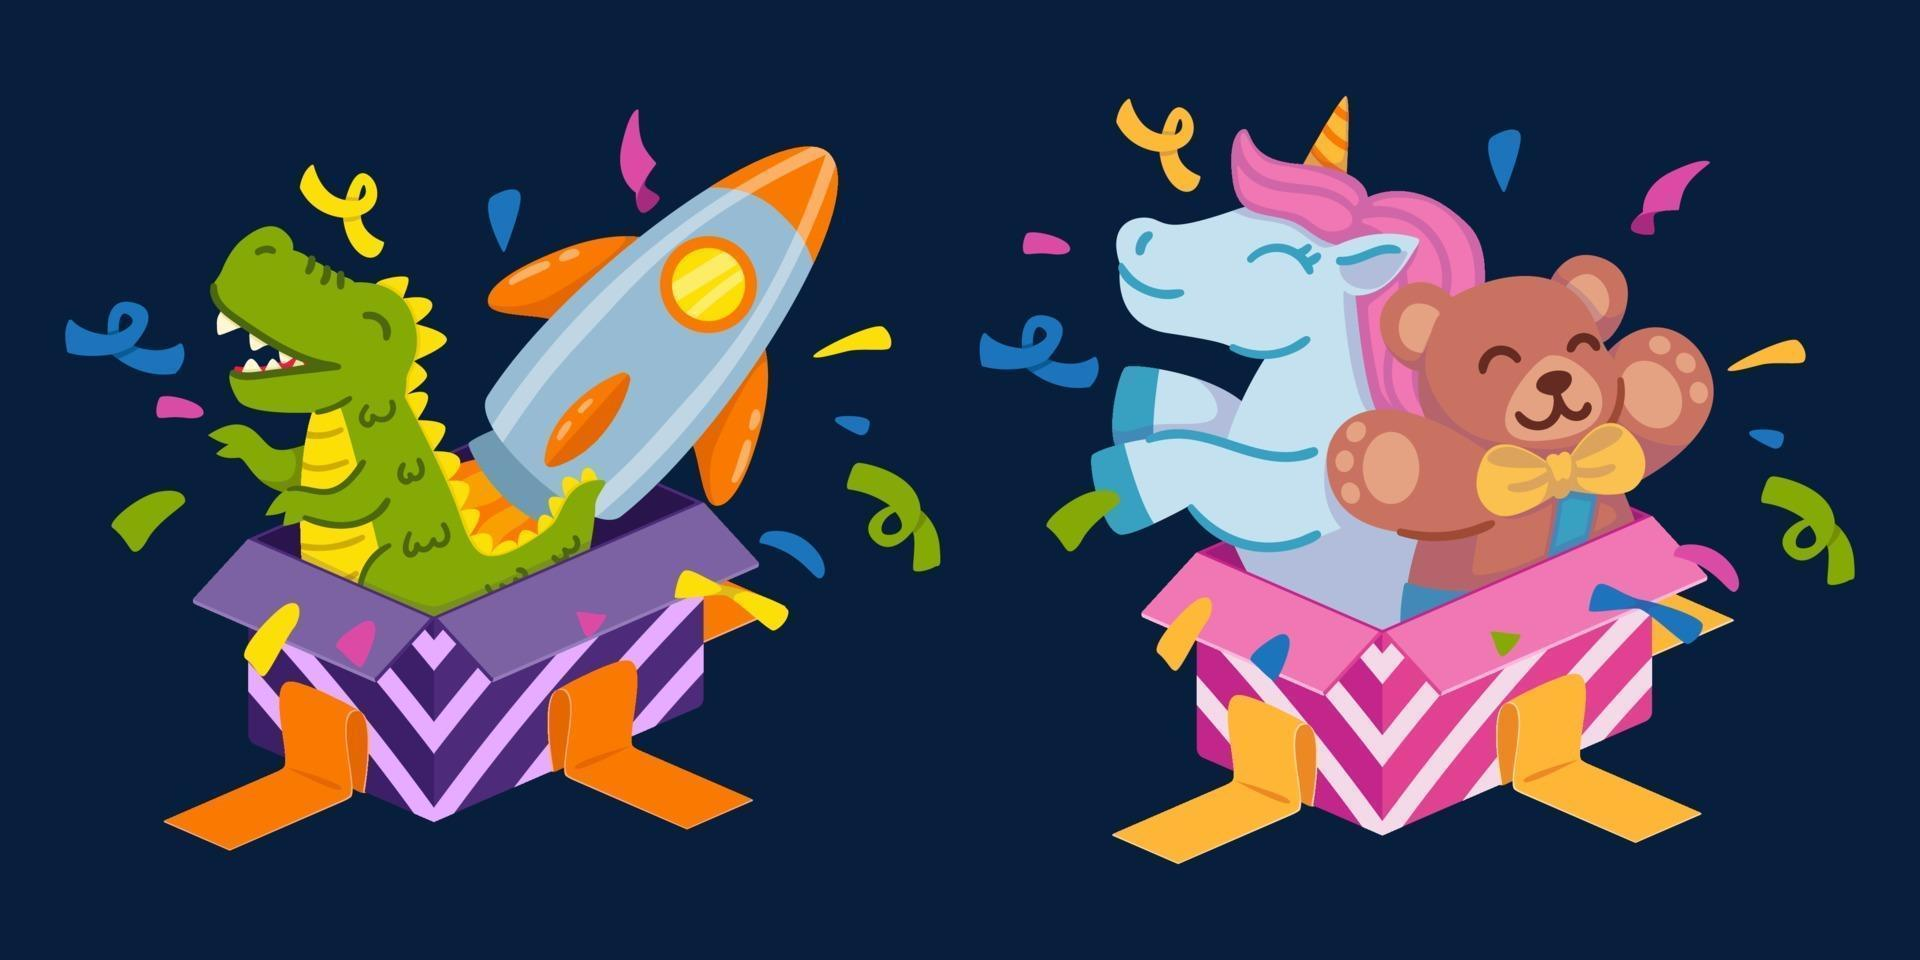 Open gift boxes for boy with dinosaur and space rocket and for girl with unicorn and teddy bear. Set of elements for a happy birthday greeting card and for a party invitation. Vector illustration.